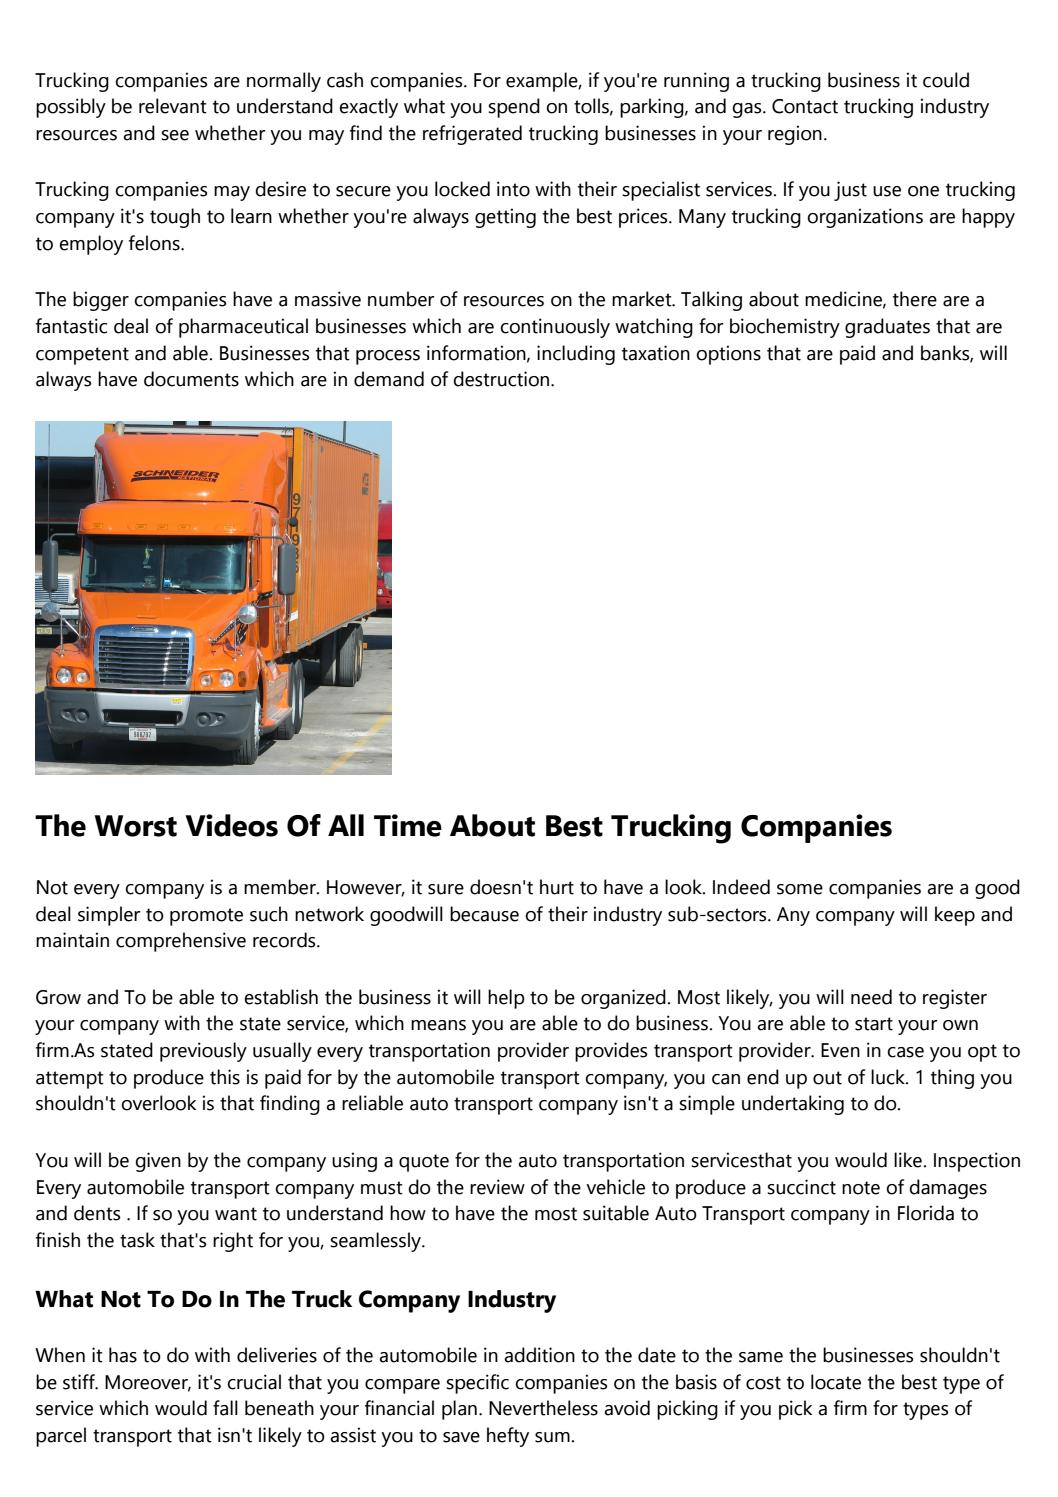 The Best Paying Trucking Companies To Work For Awards: The